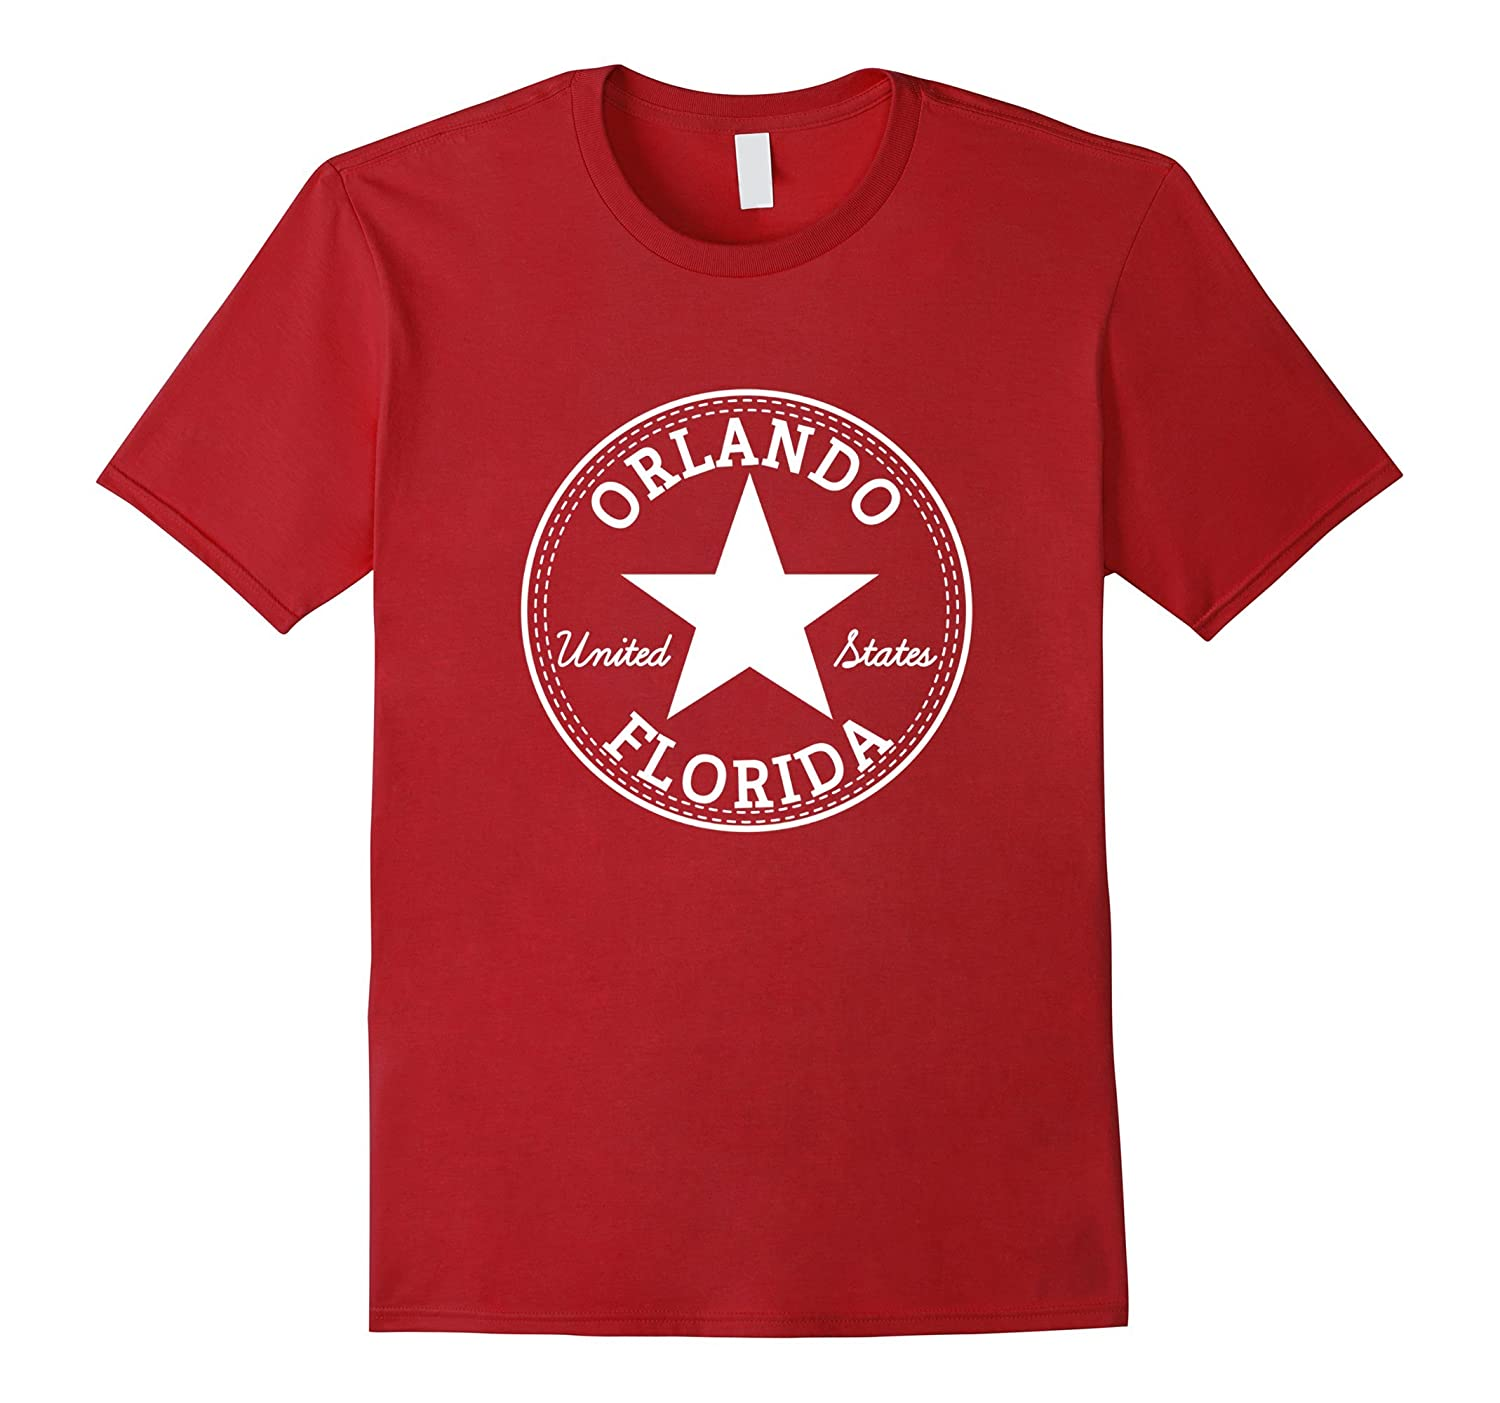 ORLANDO FLORIDA United States HOLIDAY T-Shirt Relaxed Fit